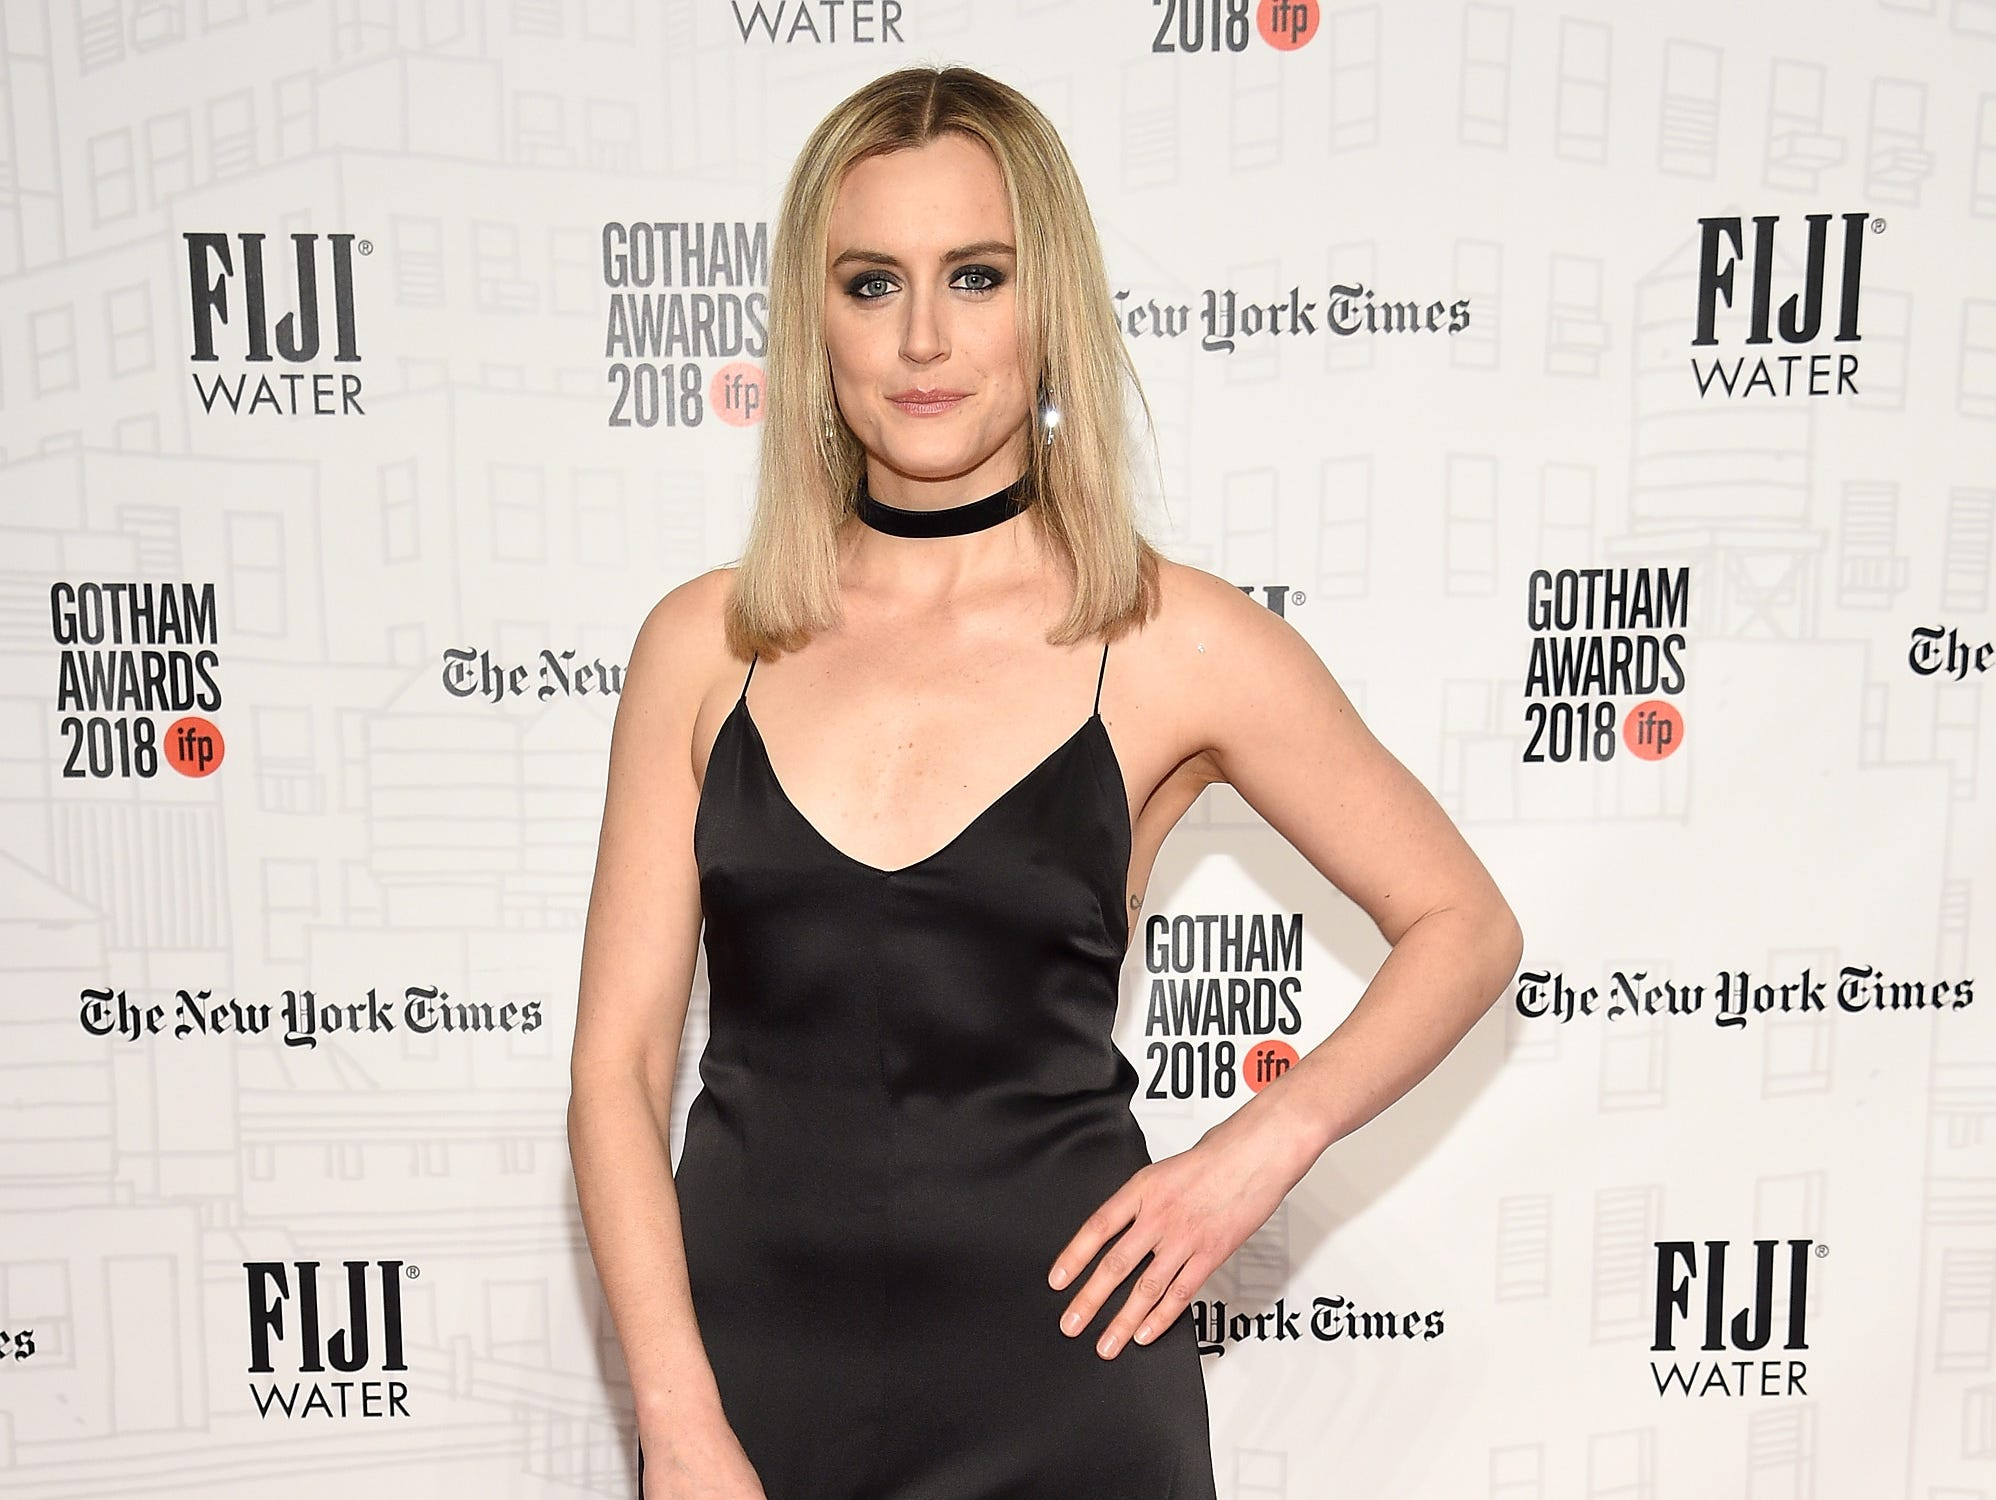 NEW YORK, NY - NOVEMBER 26:  Taylor Schilling attends IFP's 27th Annual Gotham Independent Film Awards at Cipriani, Wall Street on November 26, 2018 in New York City.  (Photo by Dimitrios Kambouris/Getty Images for IFP) ORG XMIT: 775261541 ORIG FILE ID: 1065567358